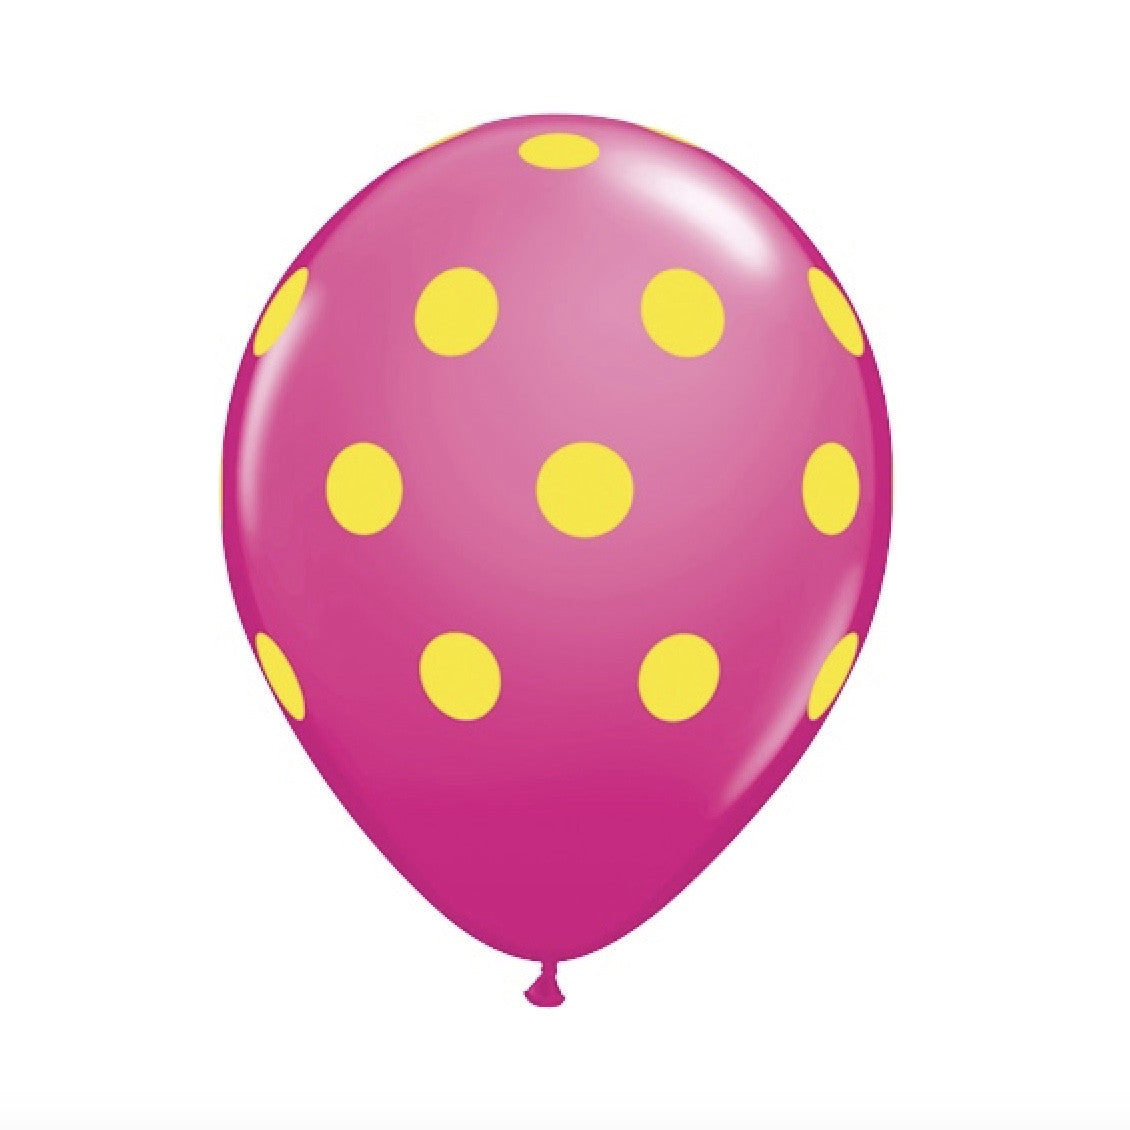 Big Polka Dots Colorful Balloons - Hot Pink & Yellow, Surprize Enterprize, Putti Fine Furnishings